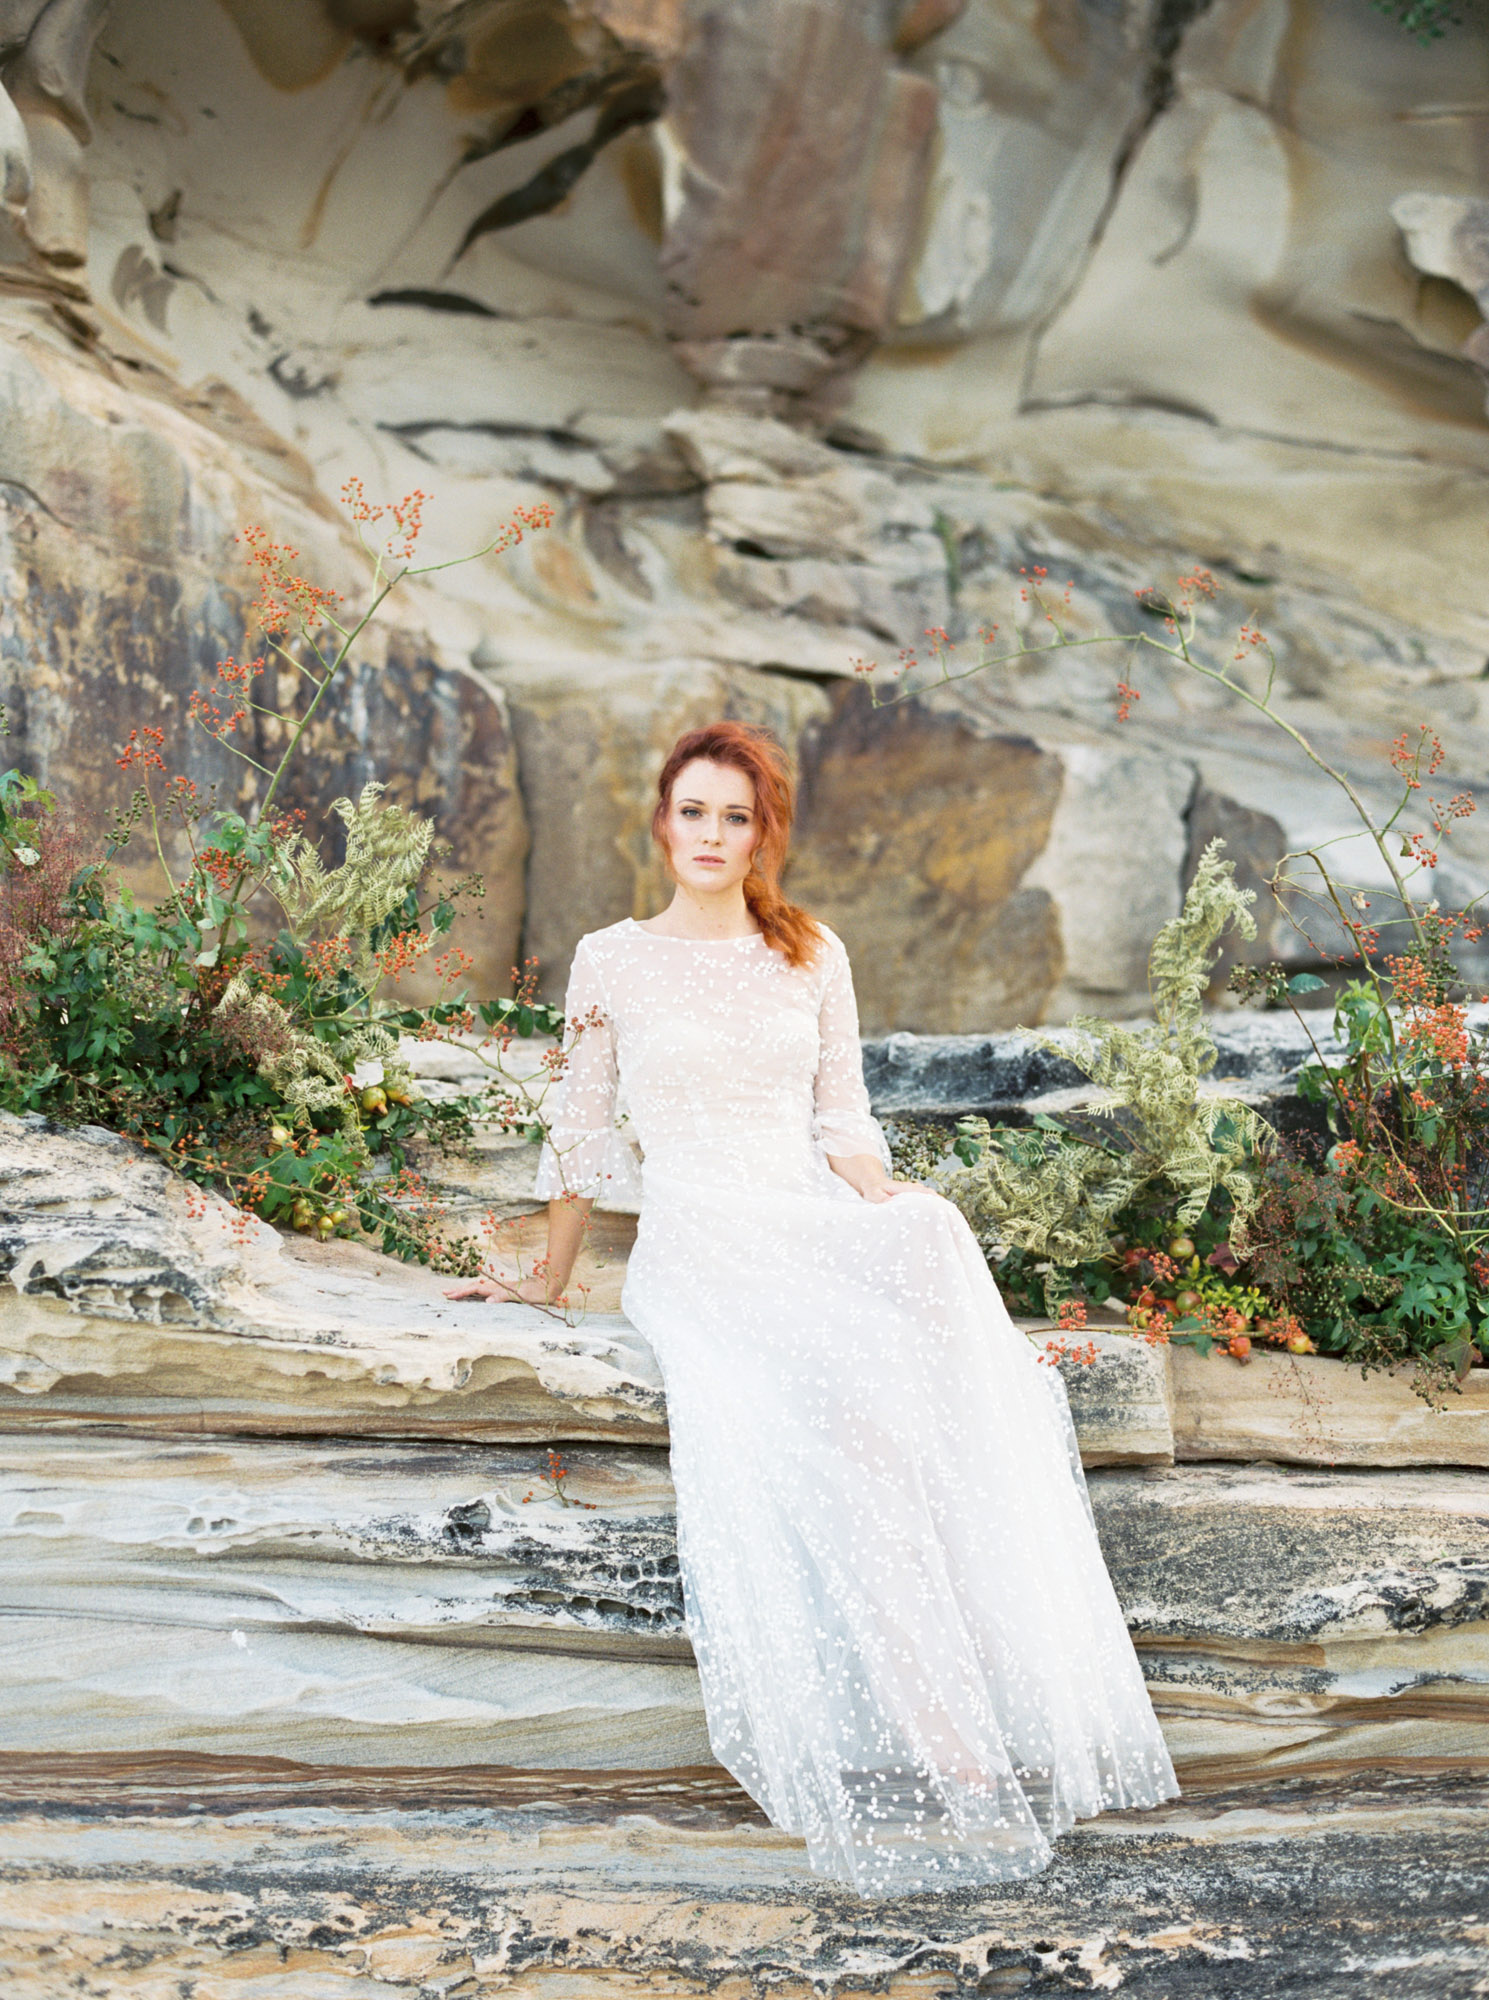 00008- Fine Art Film Newcastle NSW Wedding Photographer Sheri McMahon.jpg